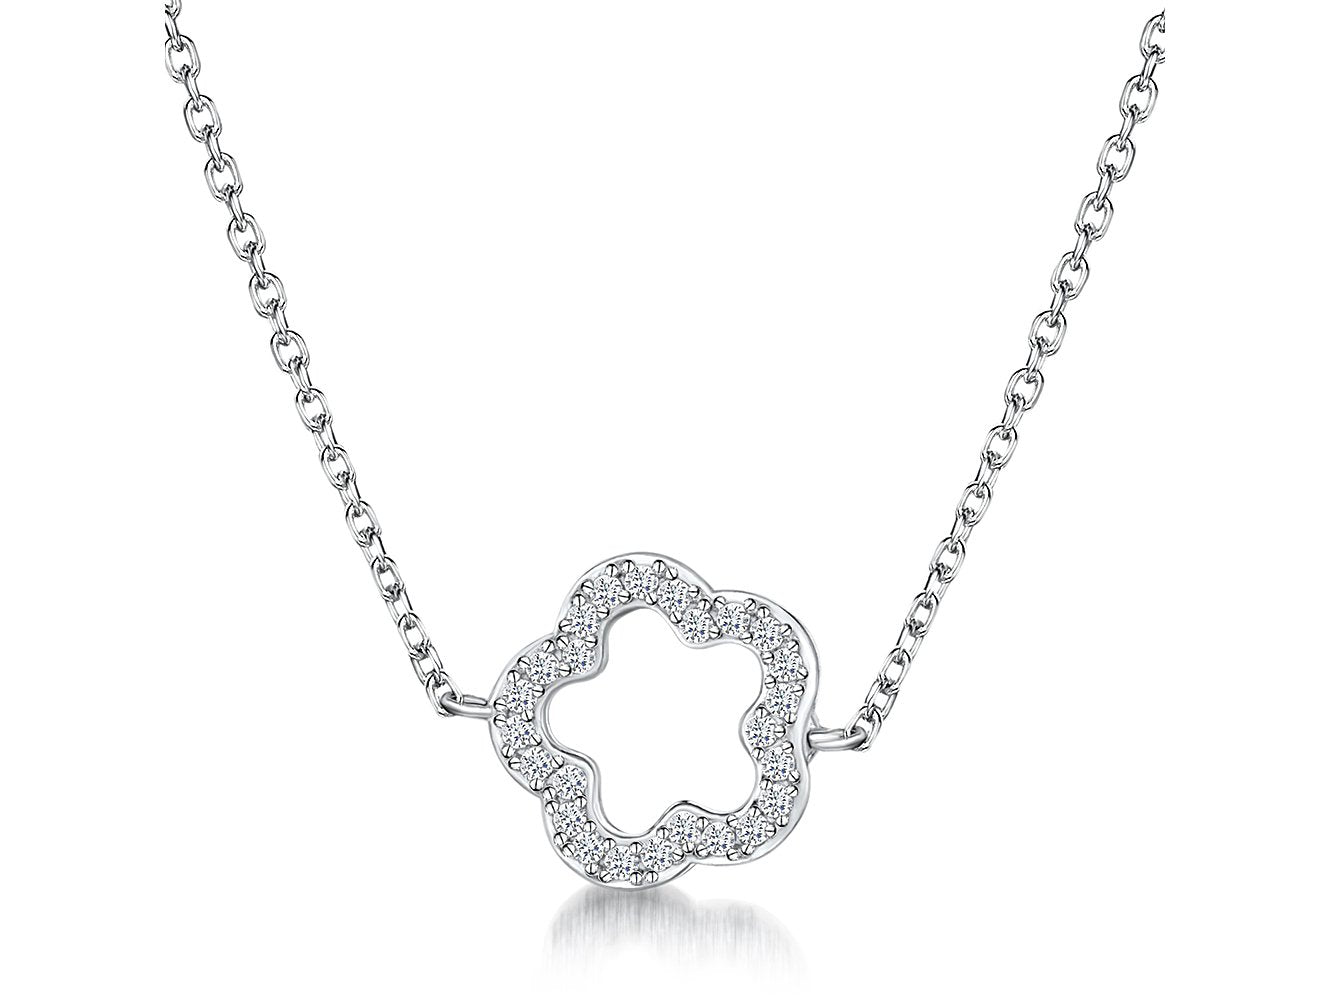 STERLING SILVER NECKLACE - FEATURING AN OPEN FLOWER CLOVER VAN CLEEF STYLE  SET WITH CUBIC ZIRCONIA STONES- PLATINUM FINISHEDNecklaces - JOOLS By Jenny Brown